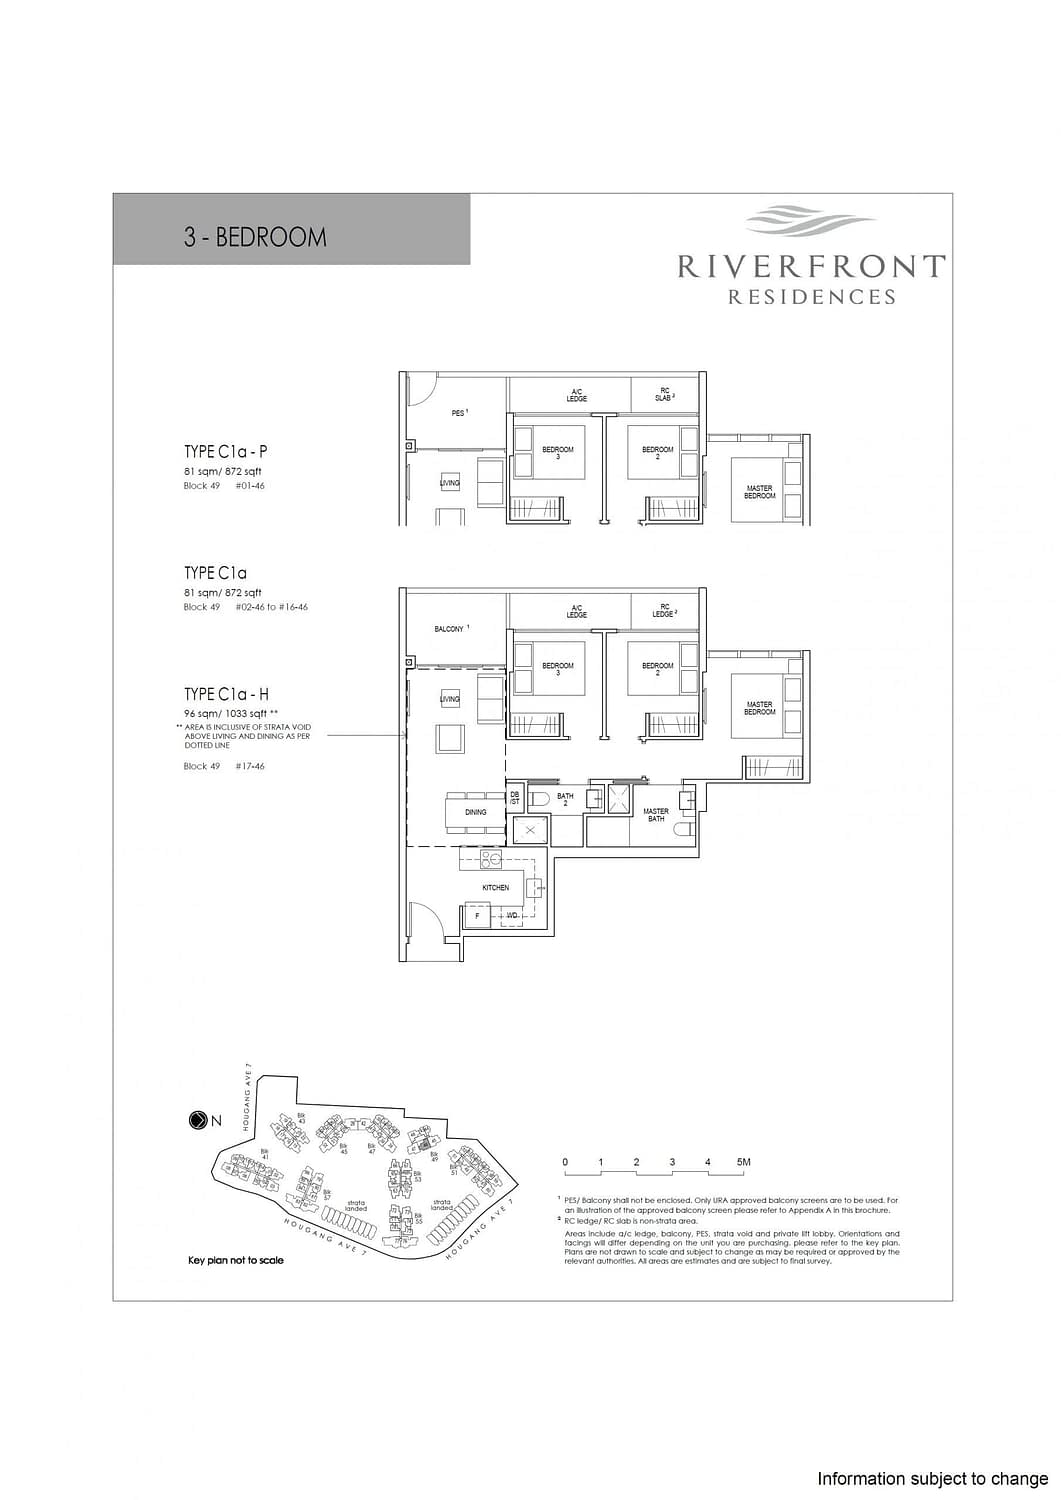 Riverfront Residences Riverfront Residences Floorplan C1a P scaled